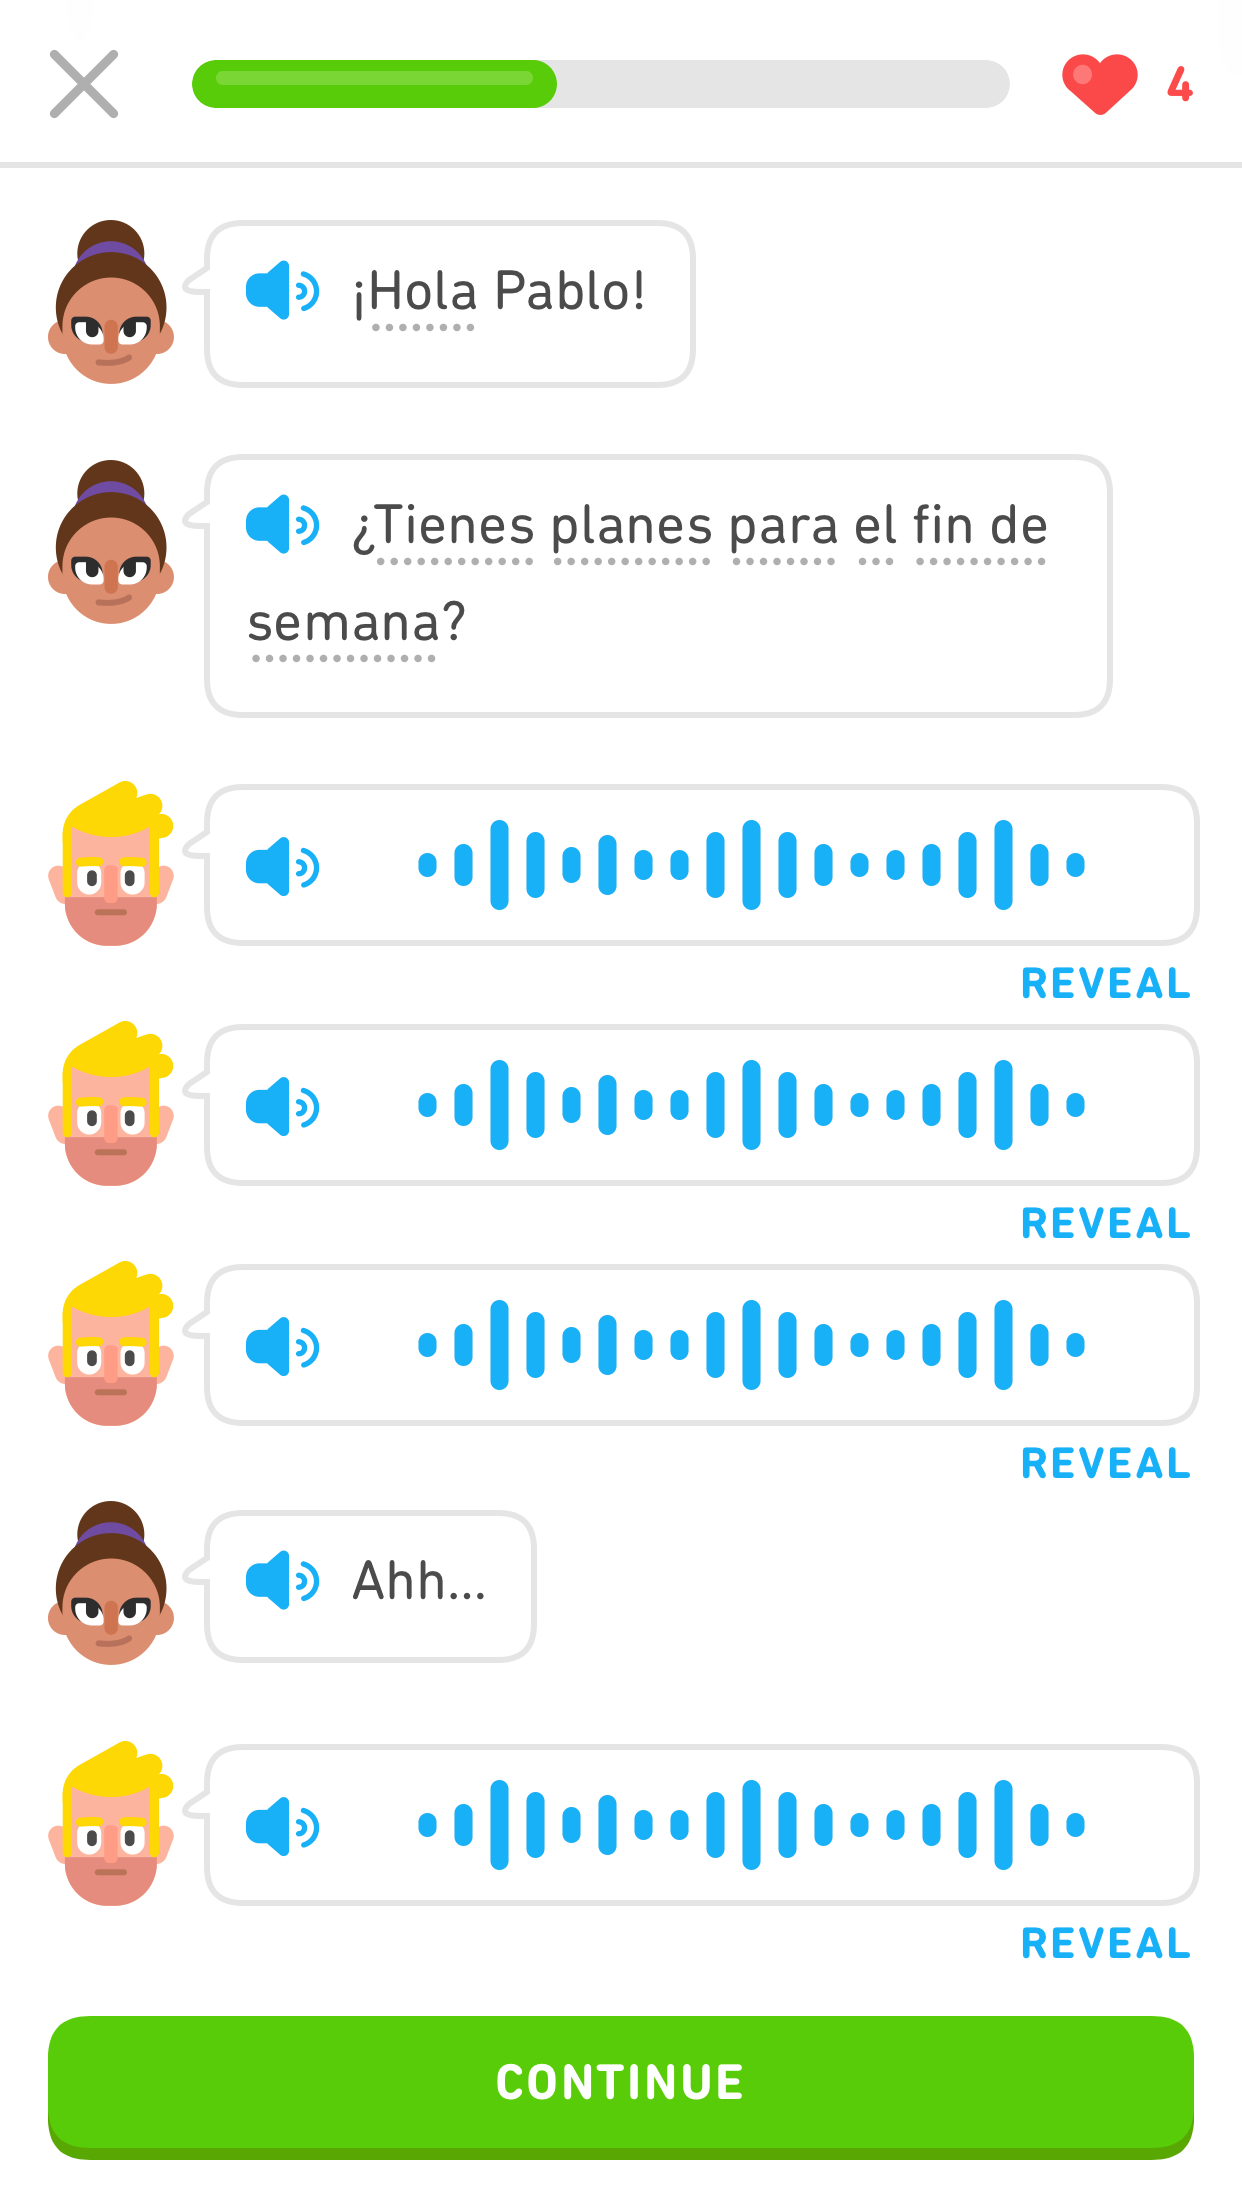 Screenshot of a Duolingo Story in Spanish. The screen shows two avatars, a man and a woman, and a conversation. The woman speaks twice, and appears each time with a speech bubble, audio button, and written words in Spanish. Then the man speaks three times, and appears each time with a speech bubble, audio button, and blue vertical lines of varying lengths to look like a speech wave. The woman speaks another turn, again with written words, and then the man speaks the final turn, with another blue speech wave.